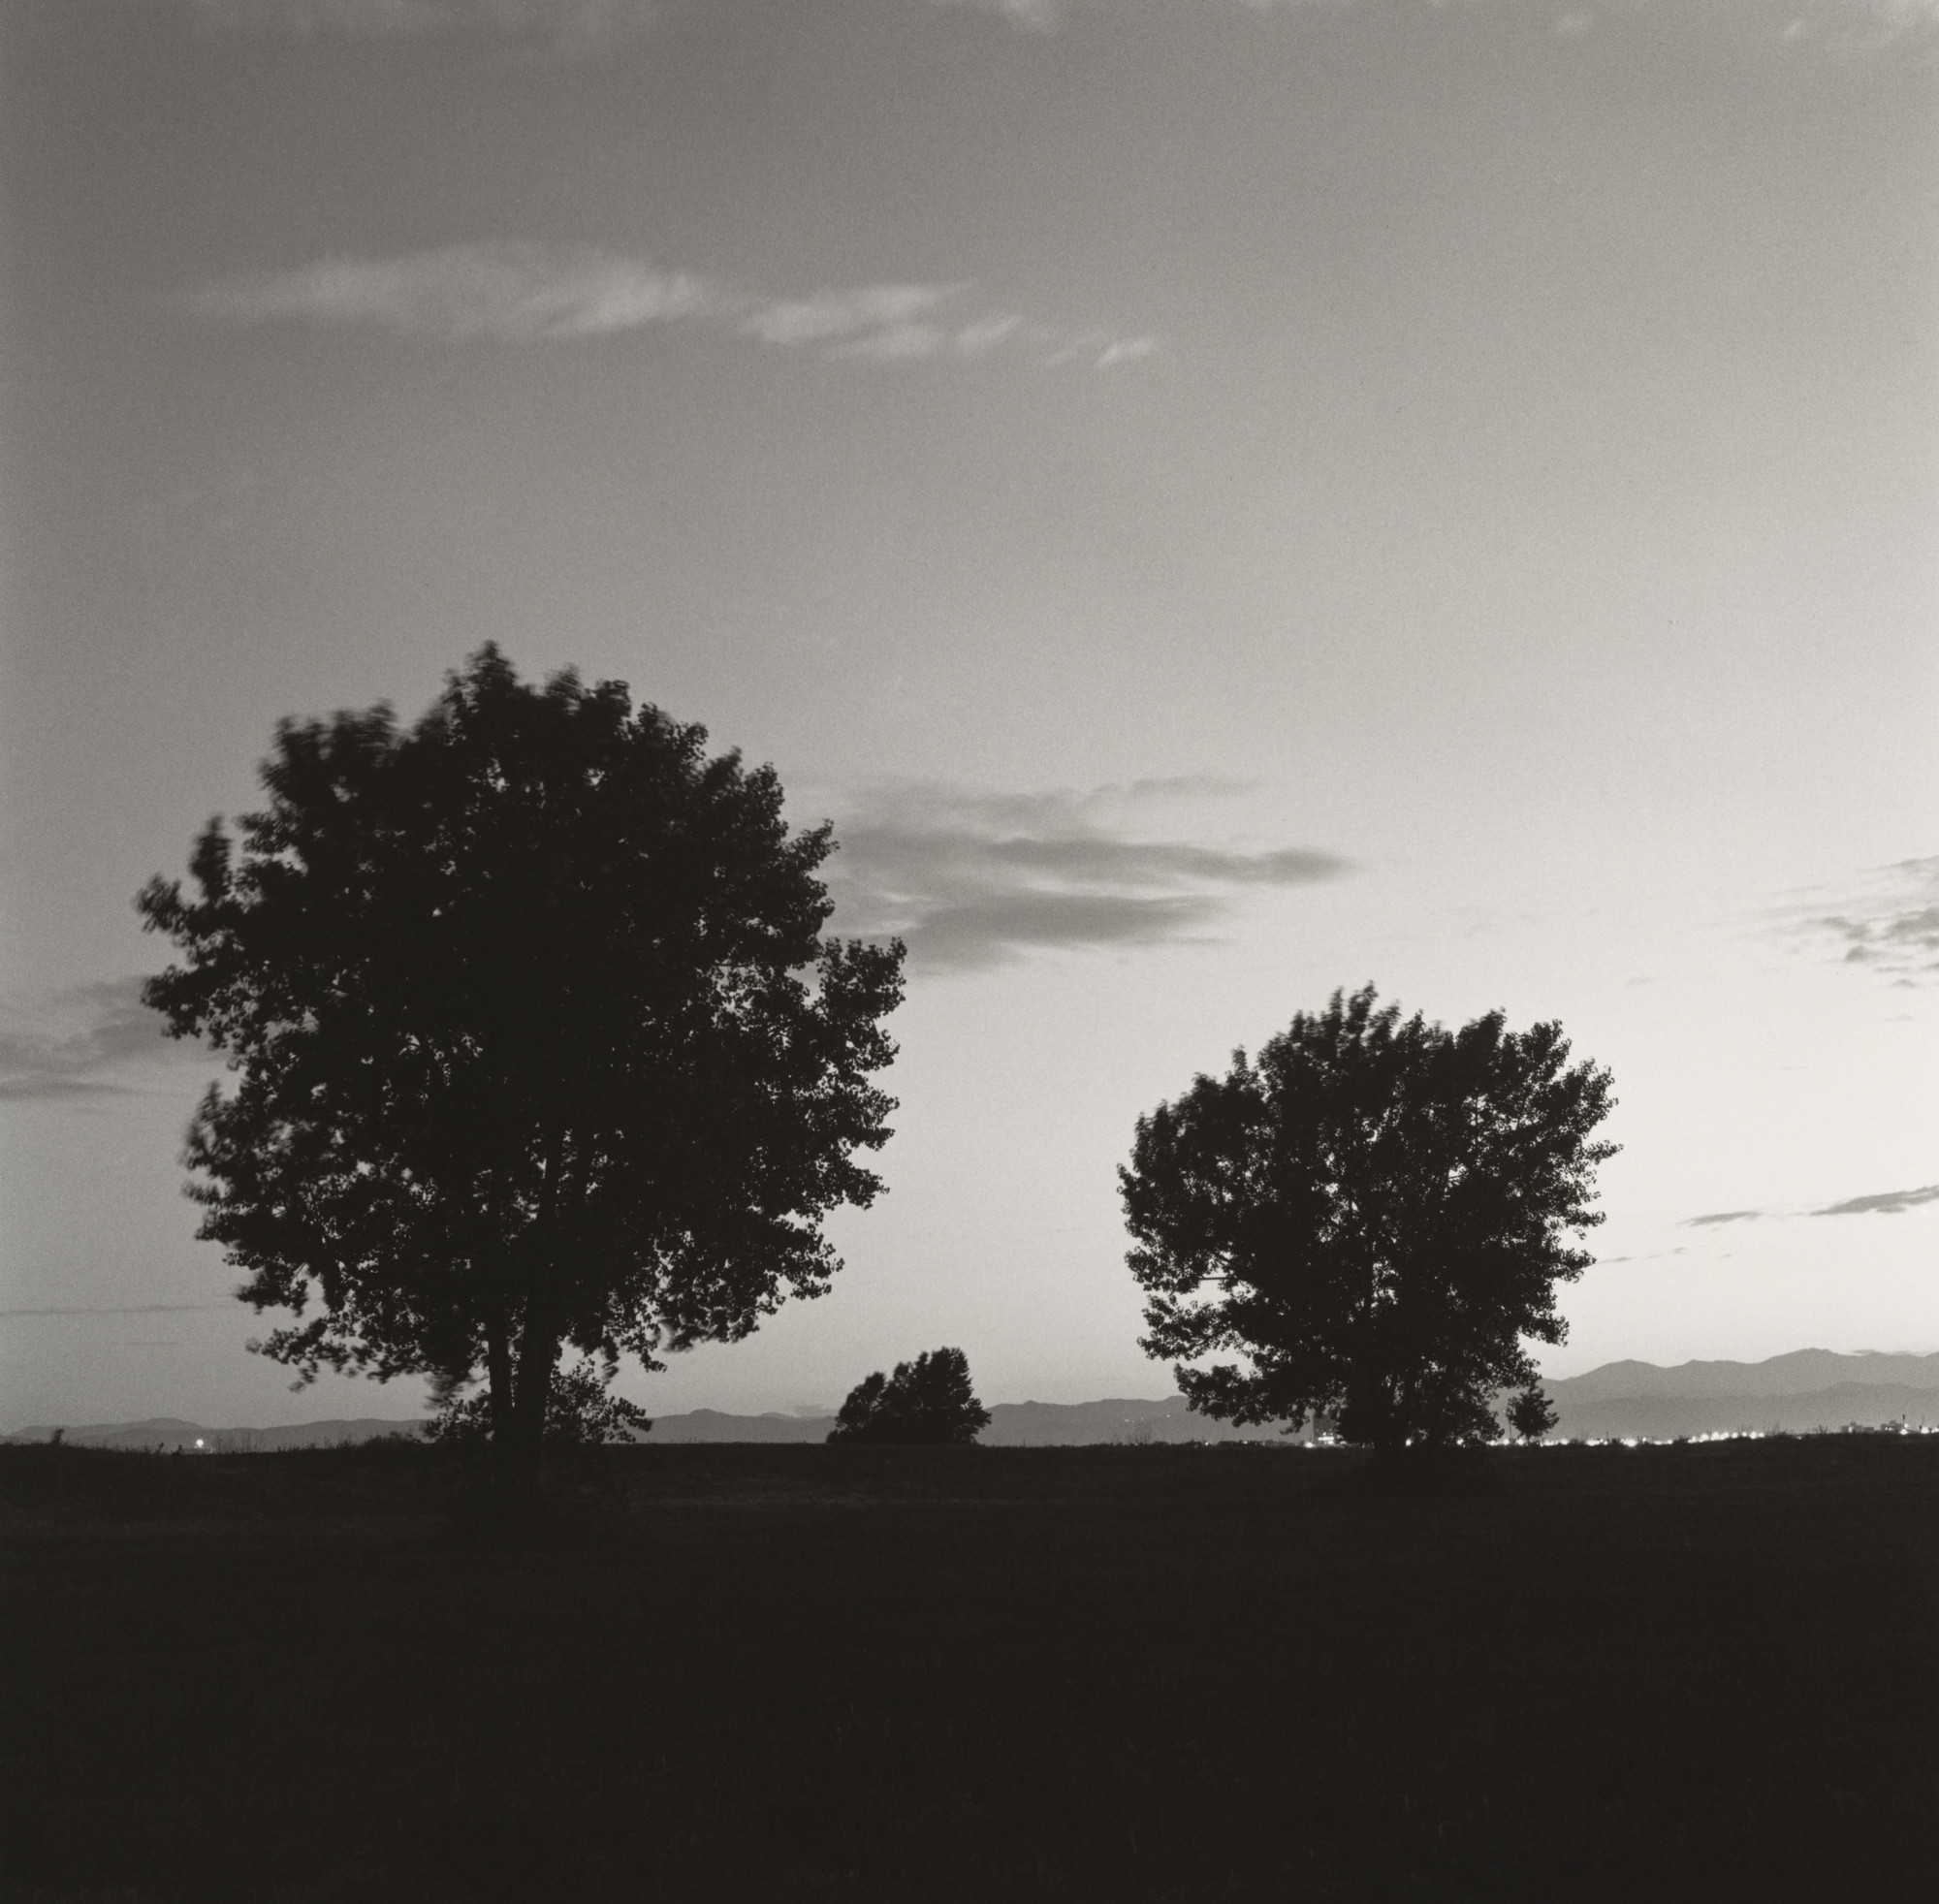 Robert Adams. Aurora, Colorado. 1979